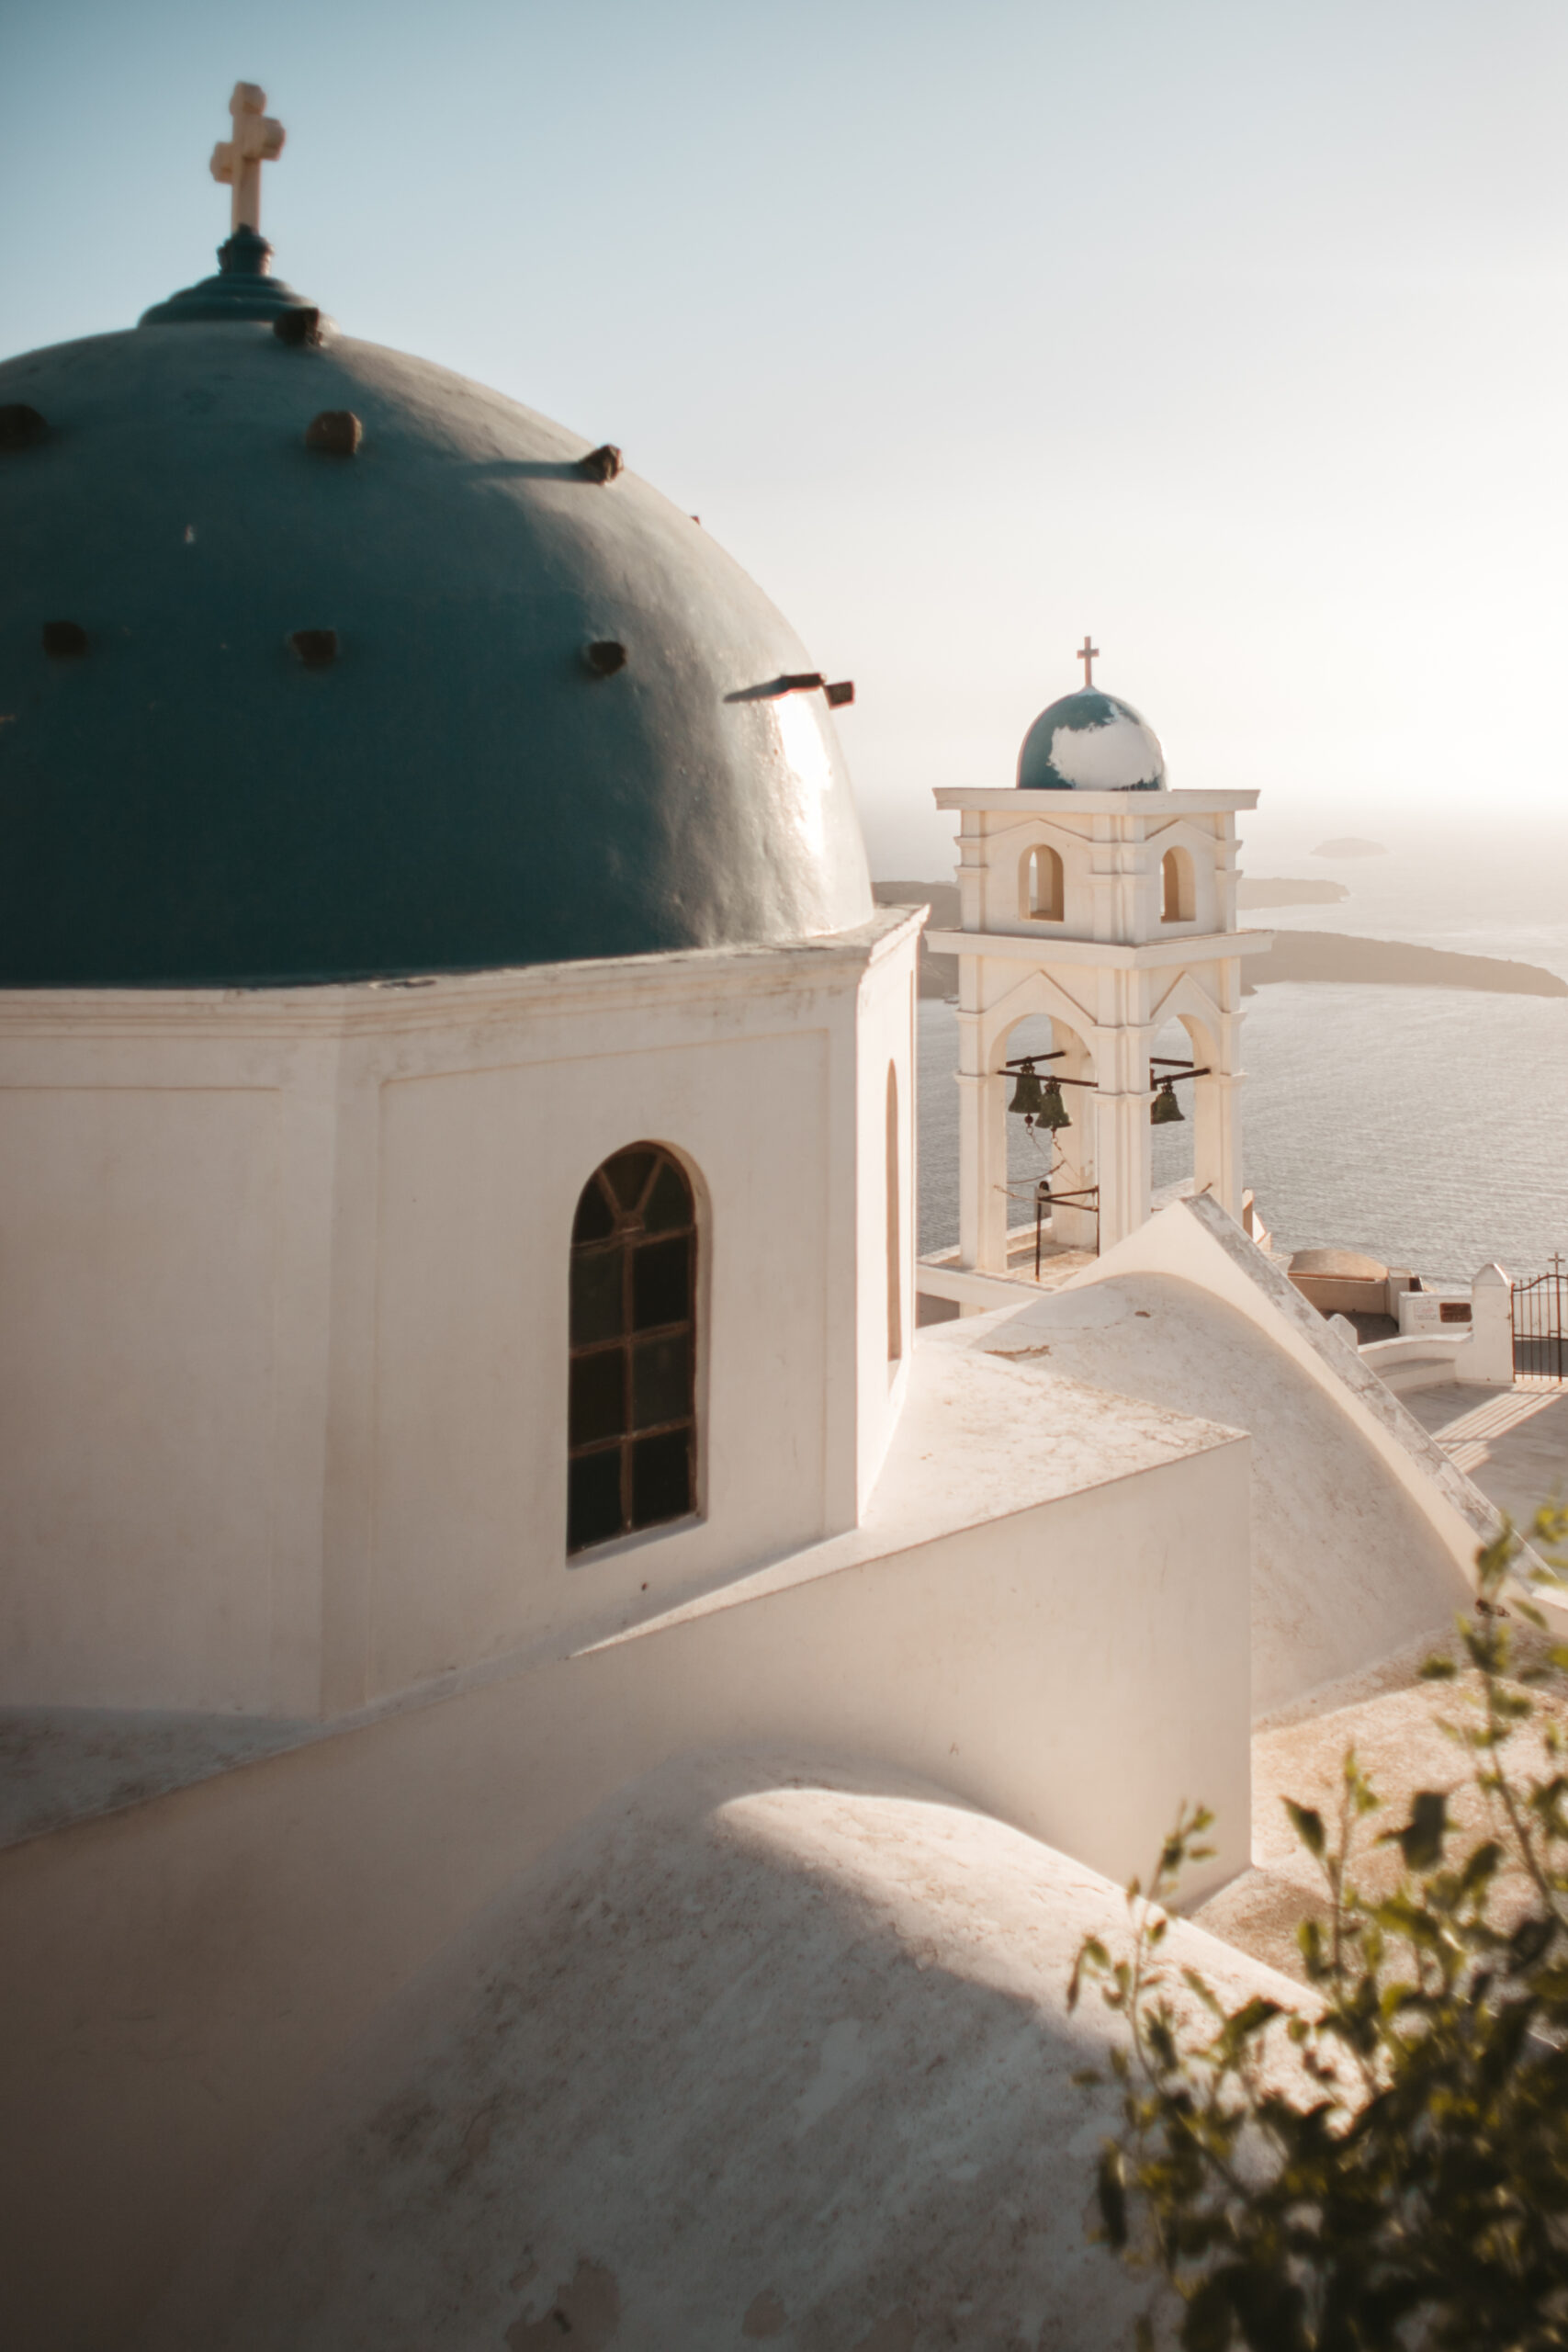 Imerovigli, Anastasis Church, blue dome church, Santorini, Oia, Grecja, sunset, zachód słońca